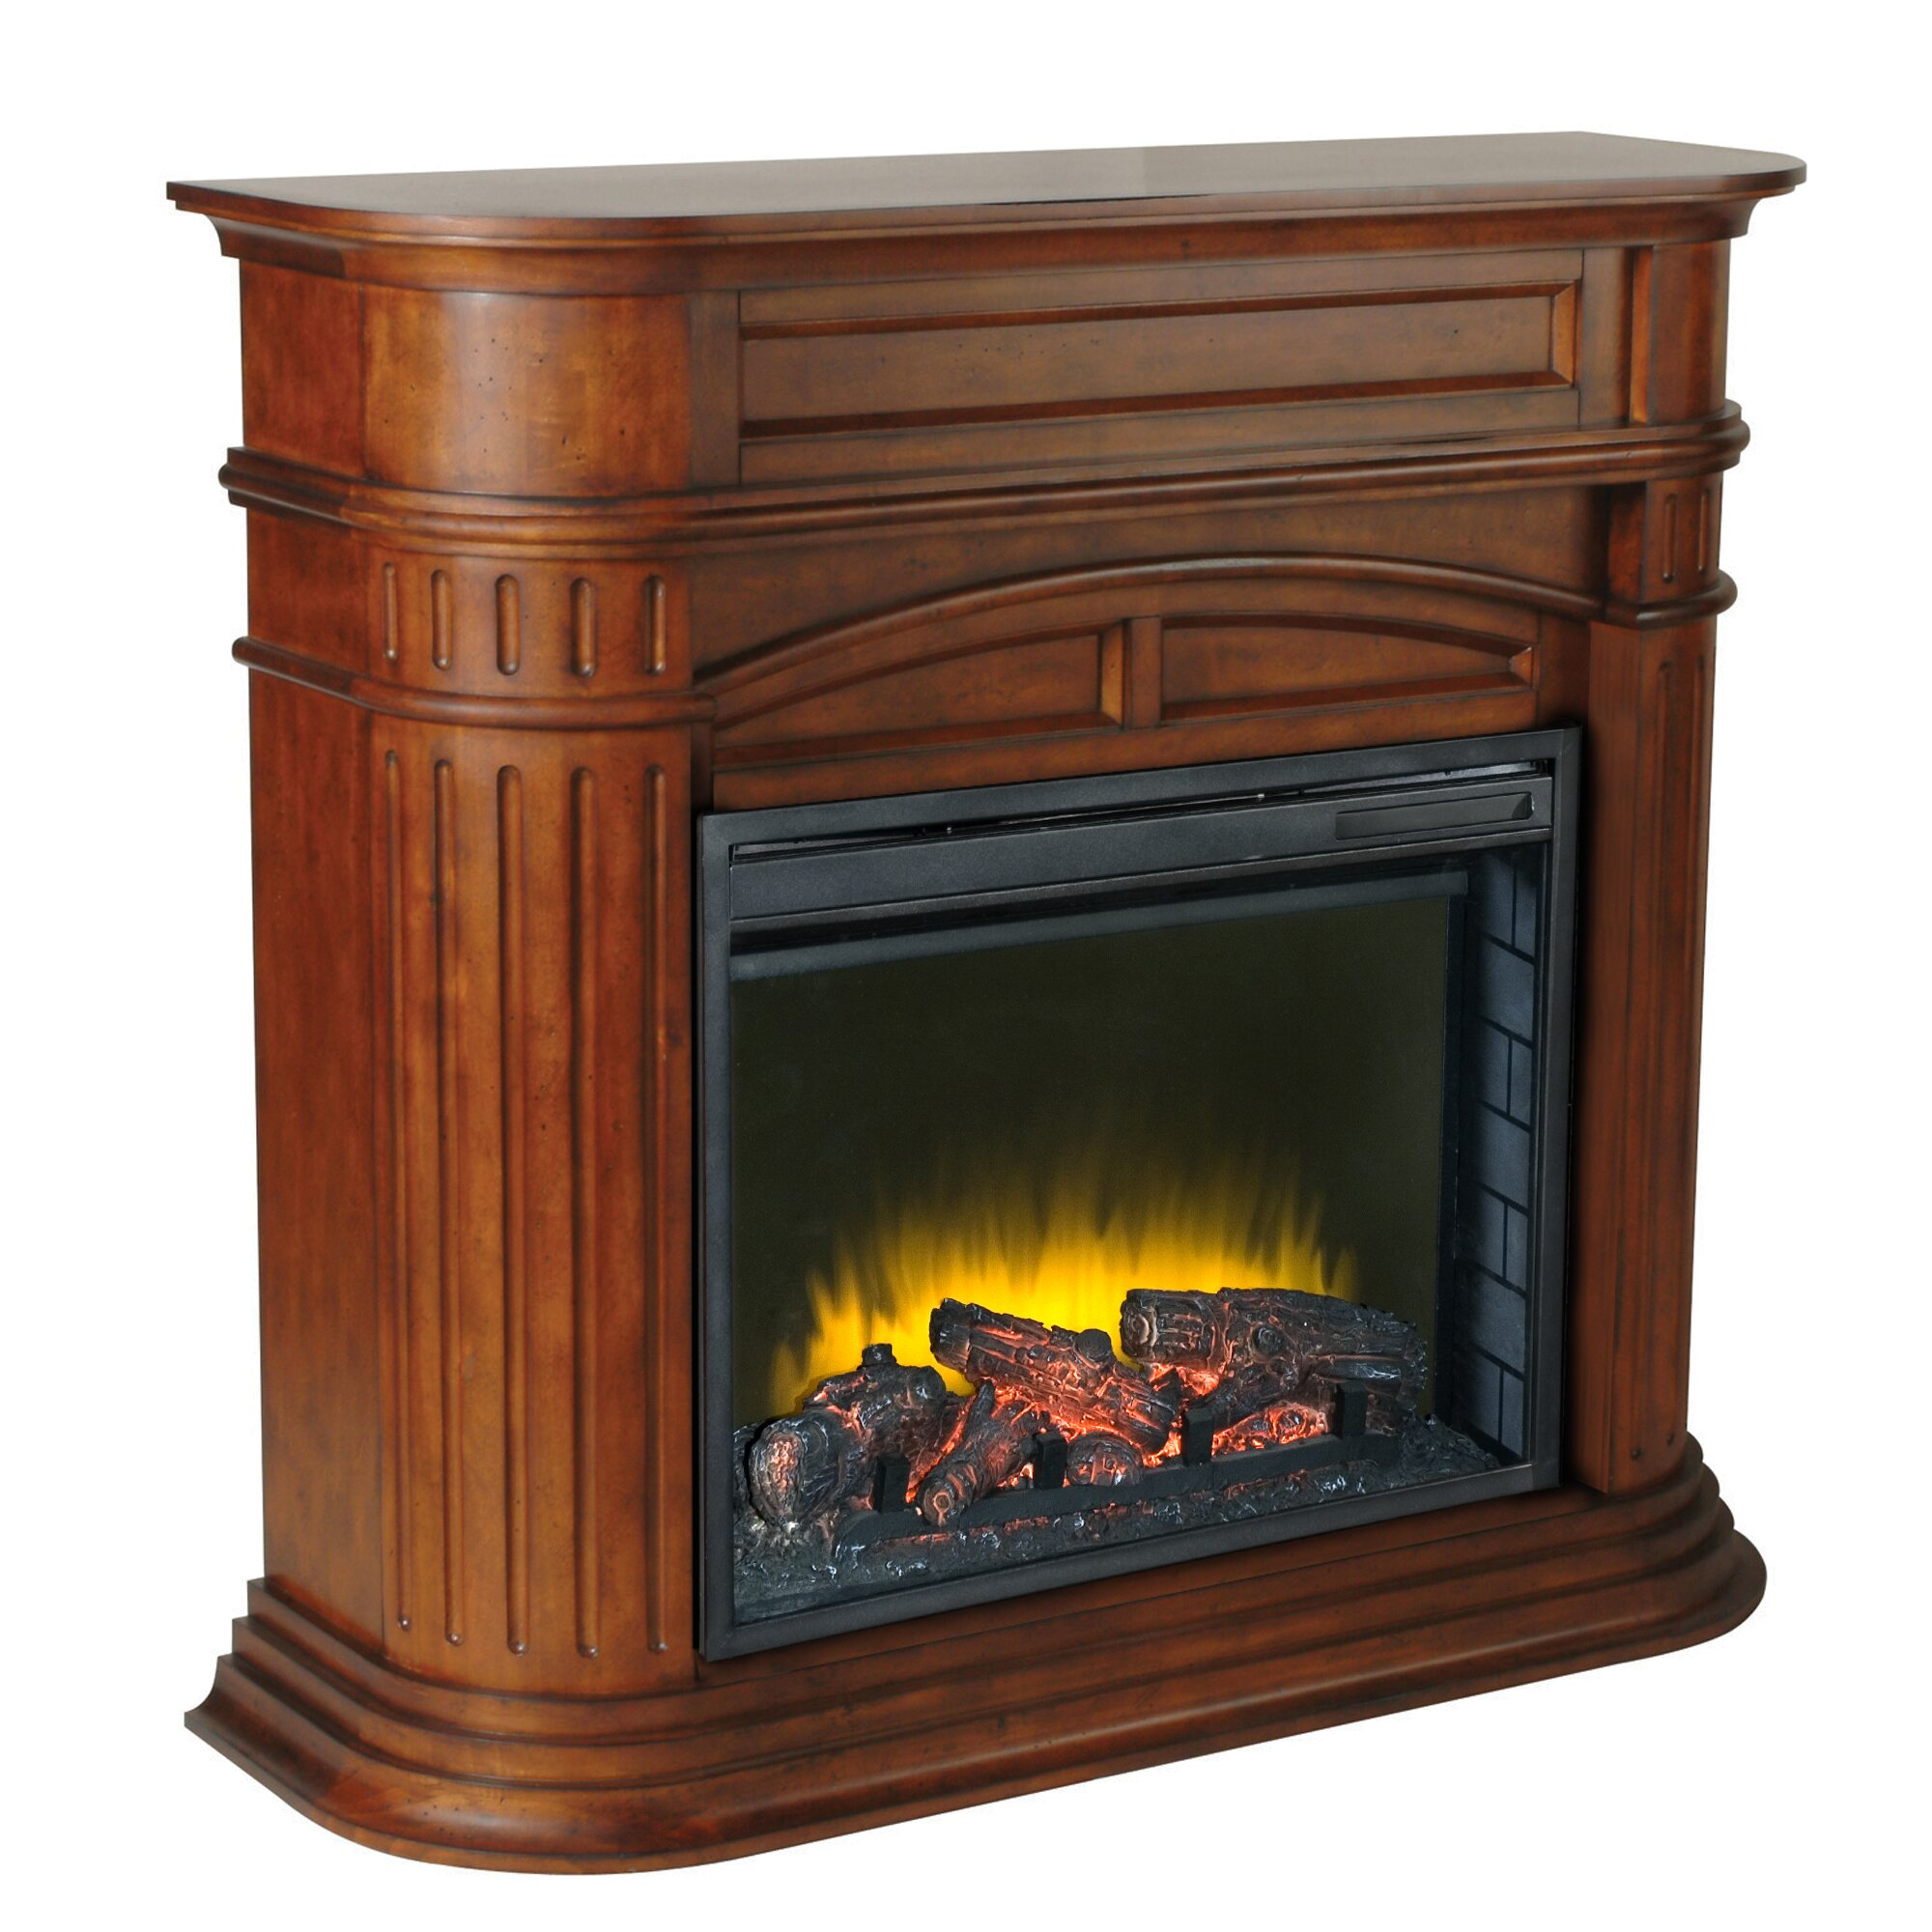 Pleasant Hearth: Pleasant Hearth Turin Electric Fireplace & Reviews